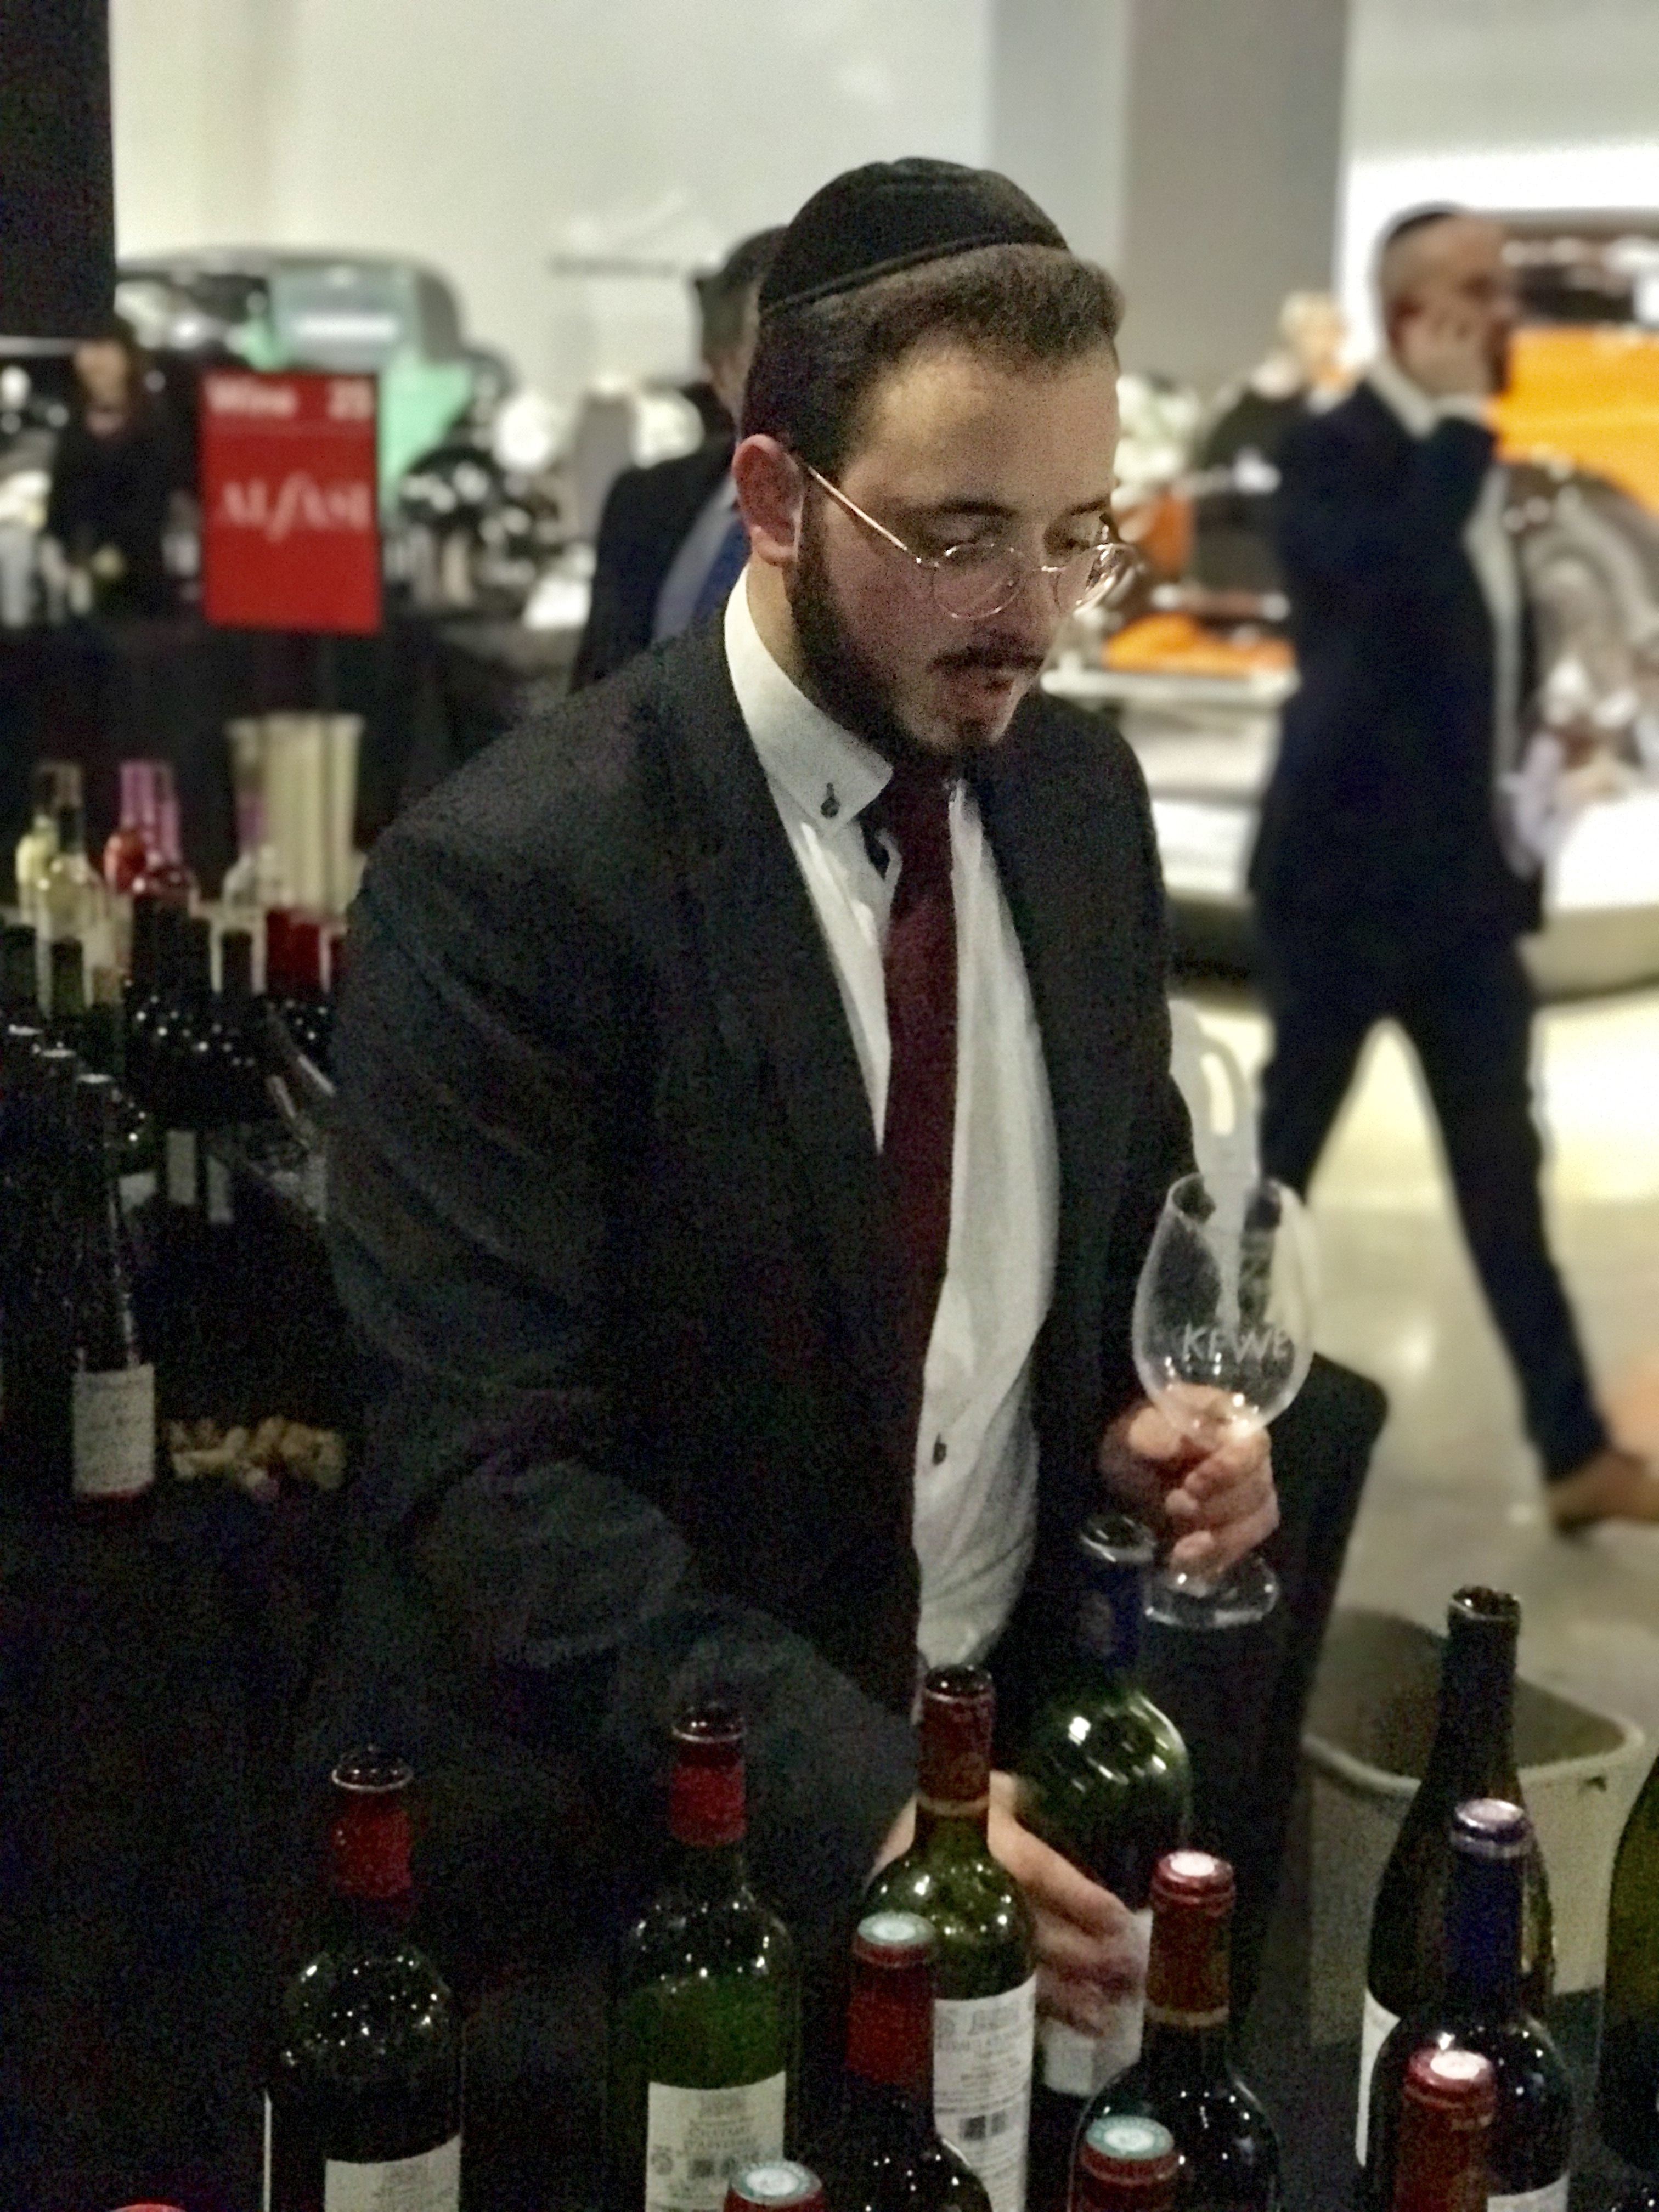 The kosher wine flowed at the 2017 Kosher Food and Wine Event in Los Angeles. Photo courtesy the Experience Magazine